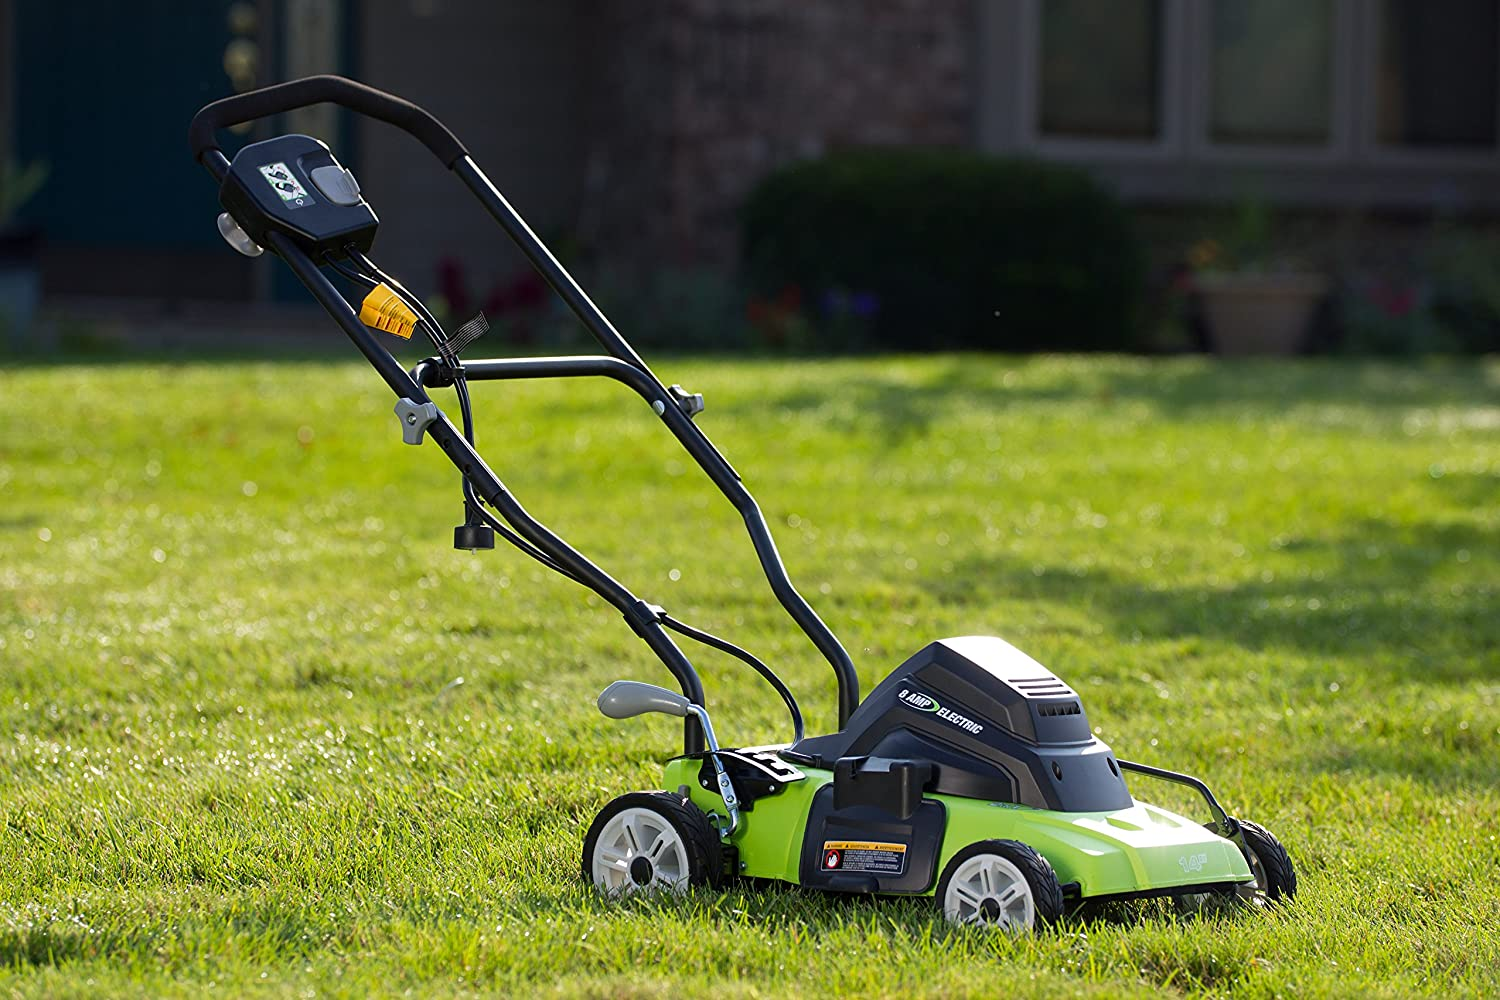 Earthwise 50214 review - The best corded electric lawn mower?